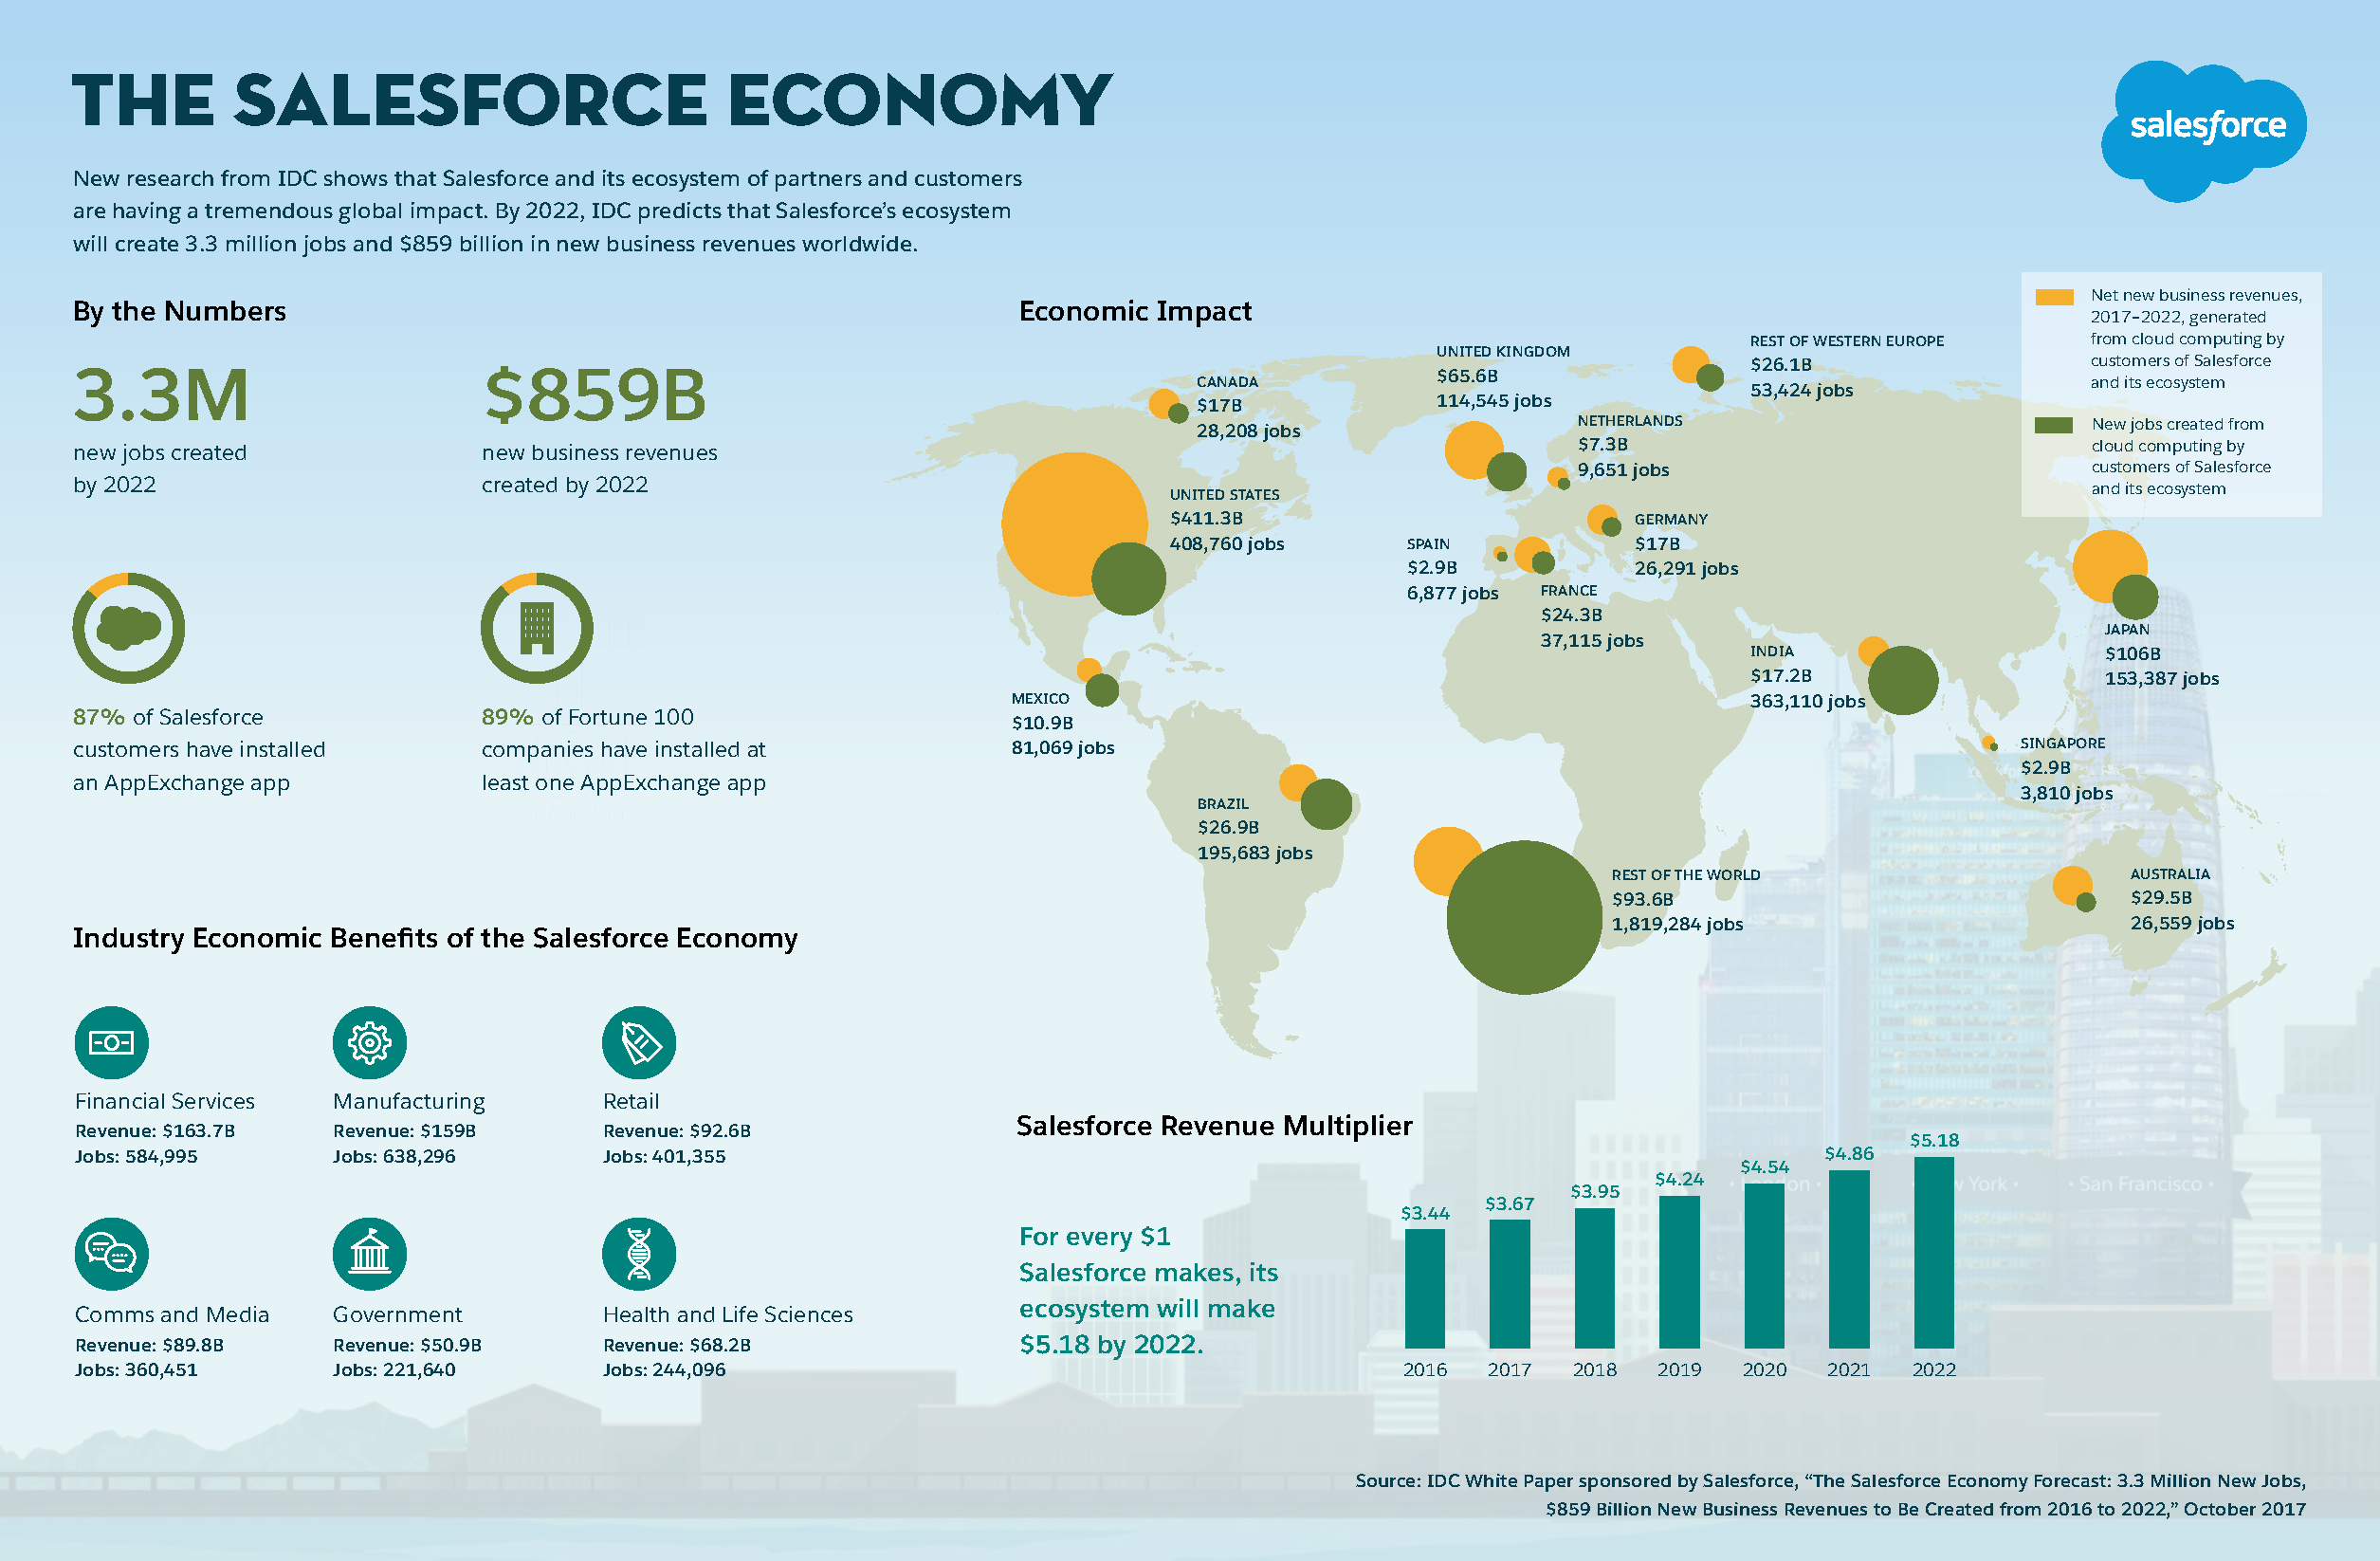 Infographic - The Salesforce Economy. Click to to see larger Infographic image.